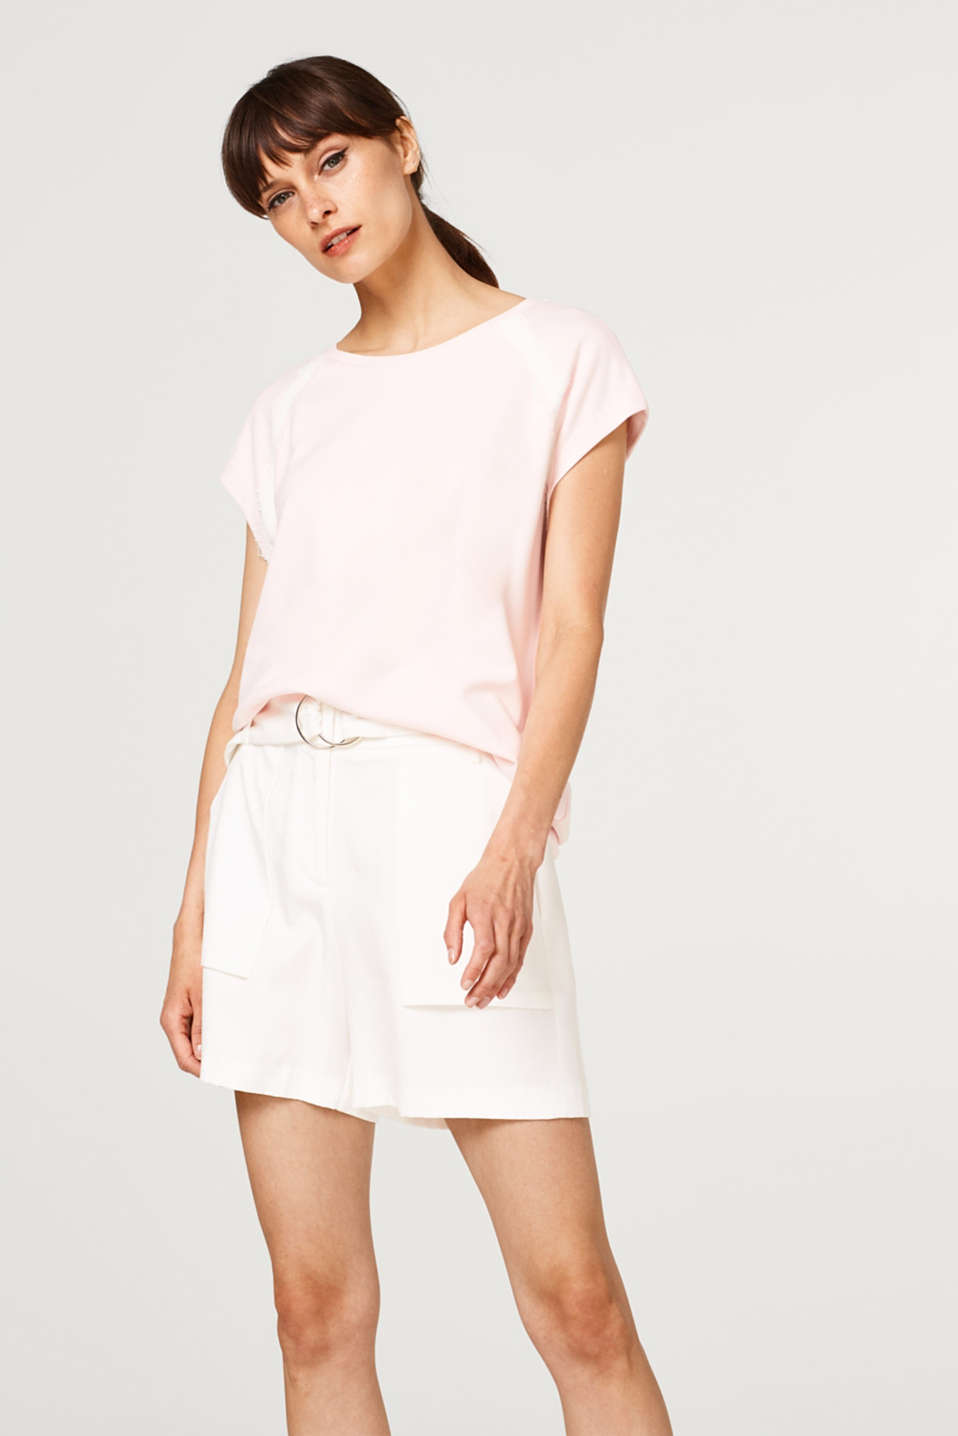 Esprit - Thick stretch jersey T-shirt with lace